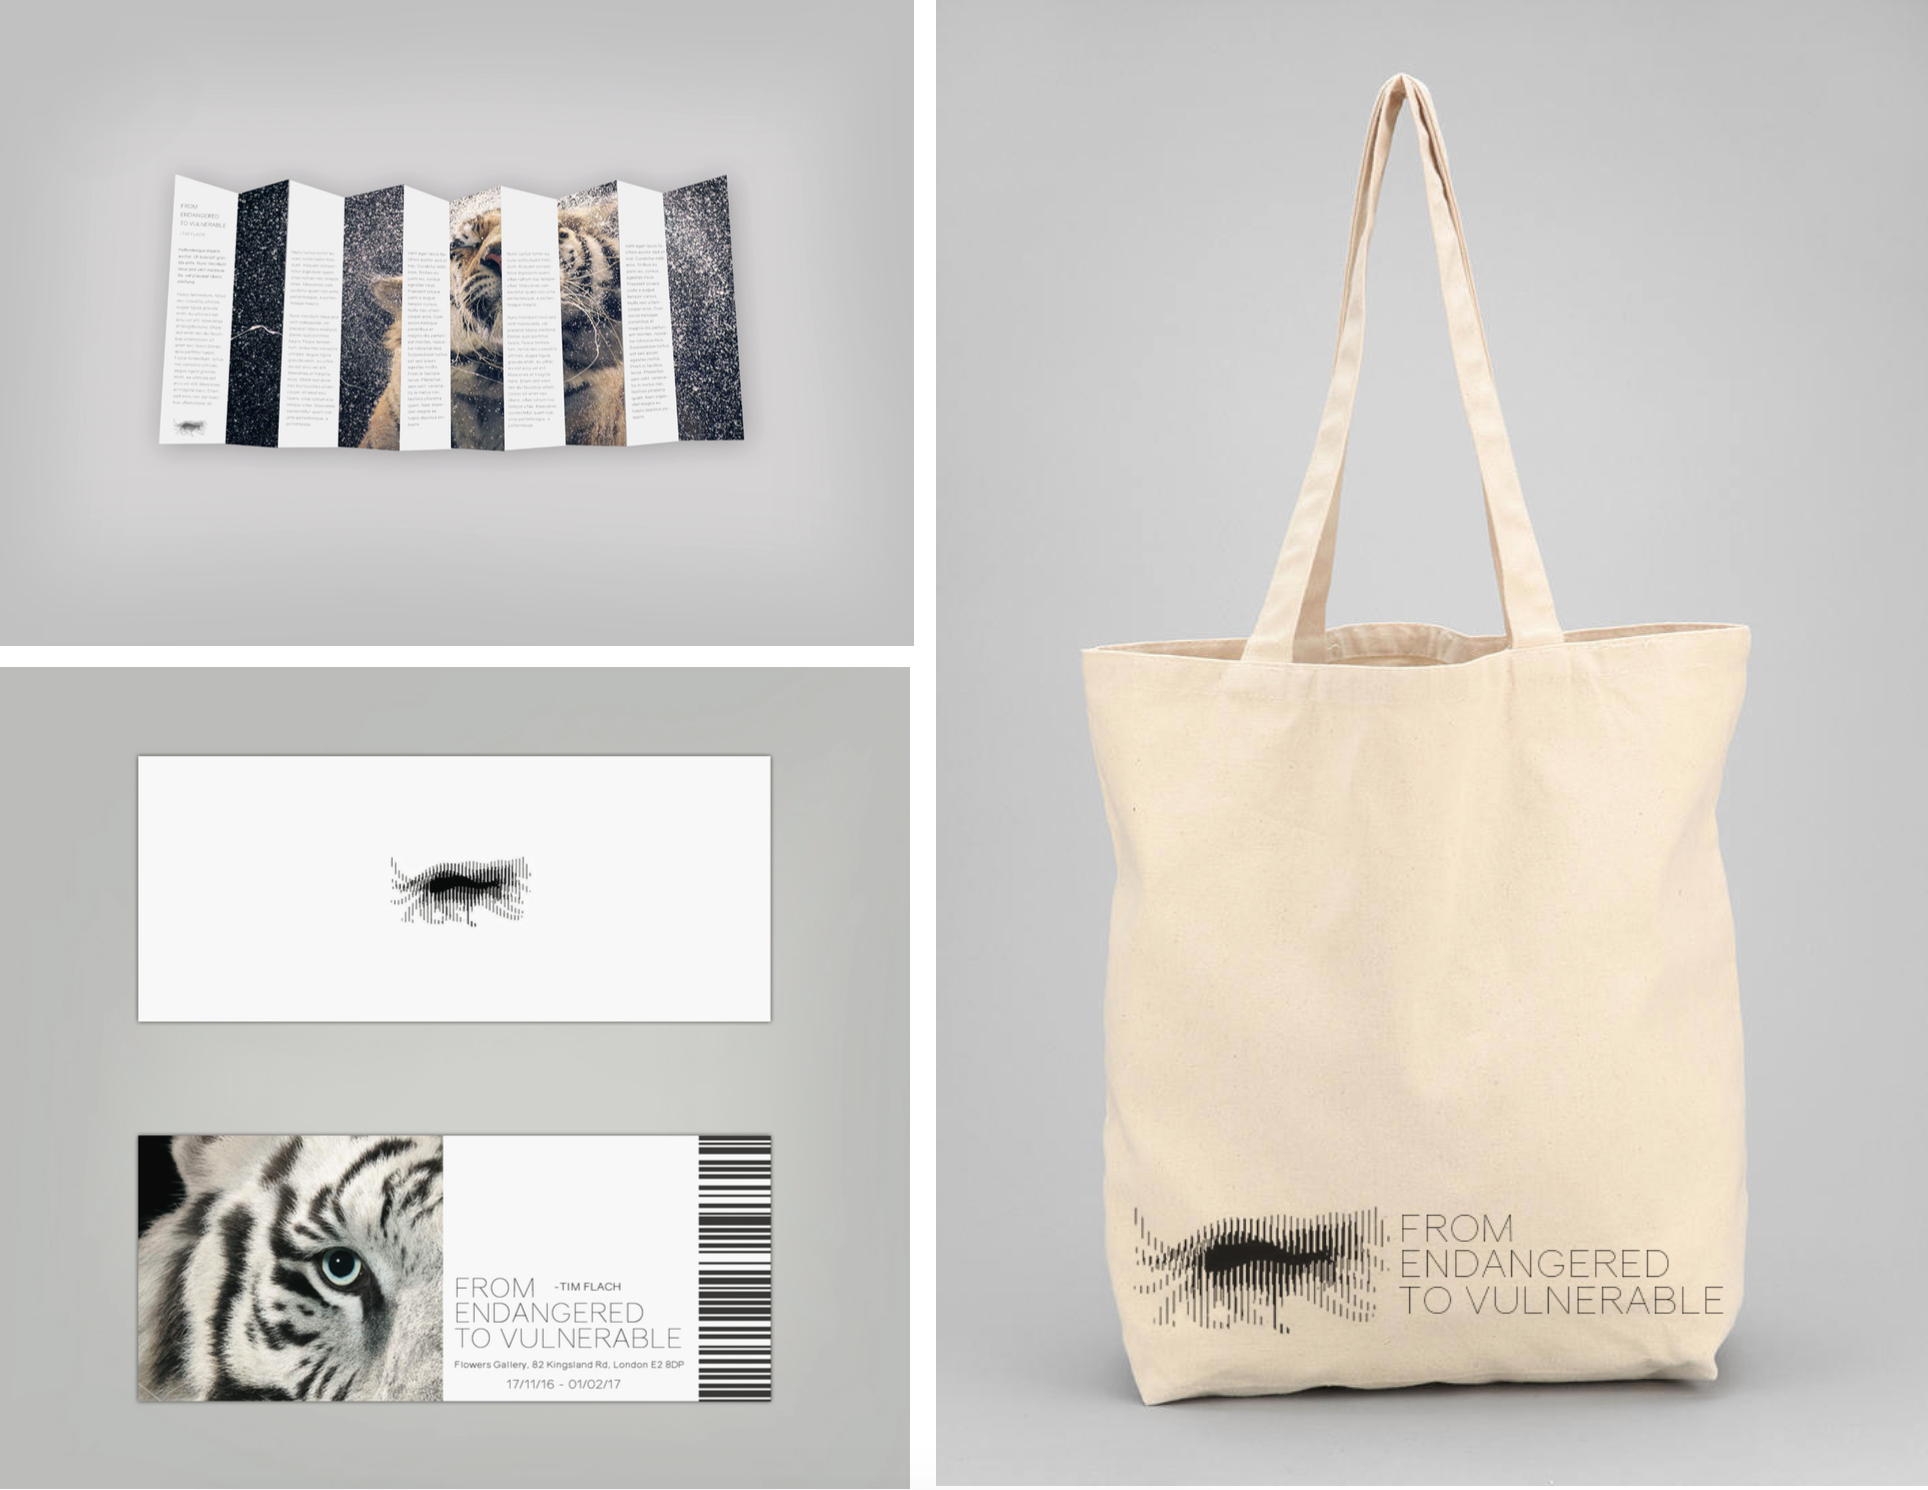 From Endangered to Vulnerable  _____  Conceptual branding for an exhibition to increase awareness of the worlds most threatened species. The name was inspired by an article from the WWF celebrating that the Giant Panda has been downgraded from 'Endangered to 'Vulnerable'. Whilst this boasts good news I couldn't help but feel saddened by the hopelessness of this minor success. The marque was inspired by old style scanimations, the suggestion of movement was to highlight the transition between the two states. I chose to use Tim Flach's photography, he has constructed a powerful visual record of remarkable animals and ecosystems facing harsh challenges.